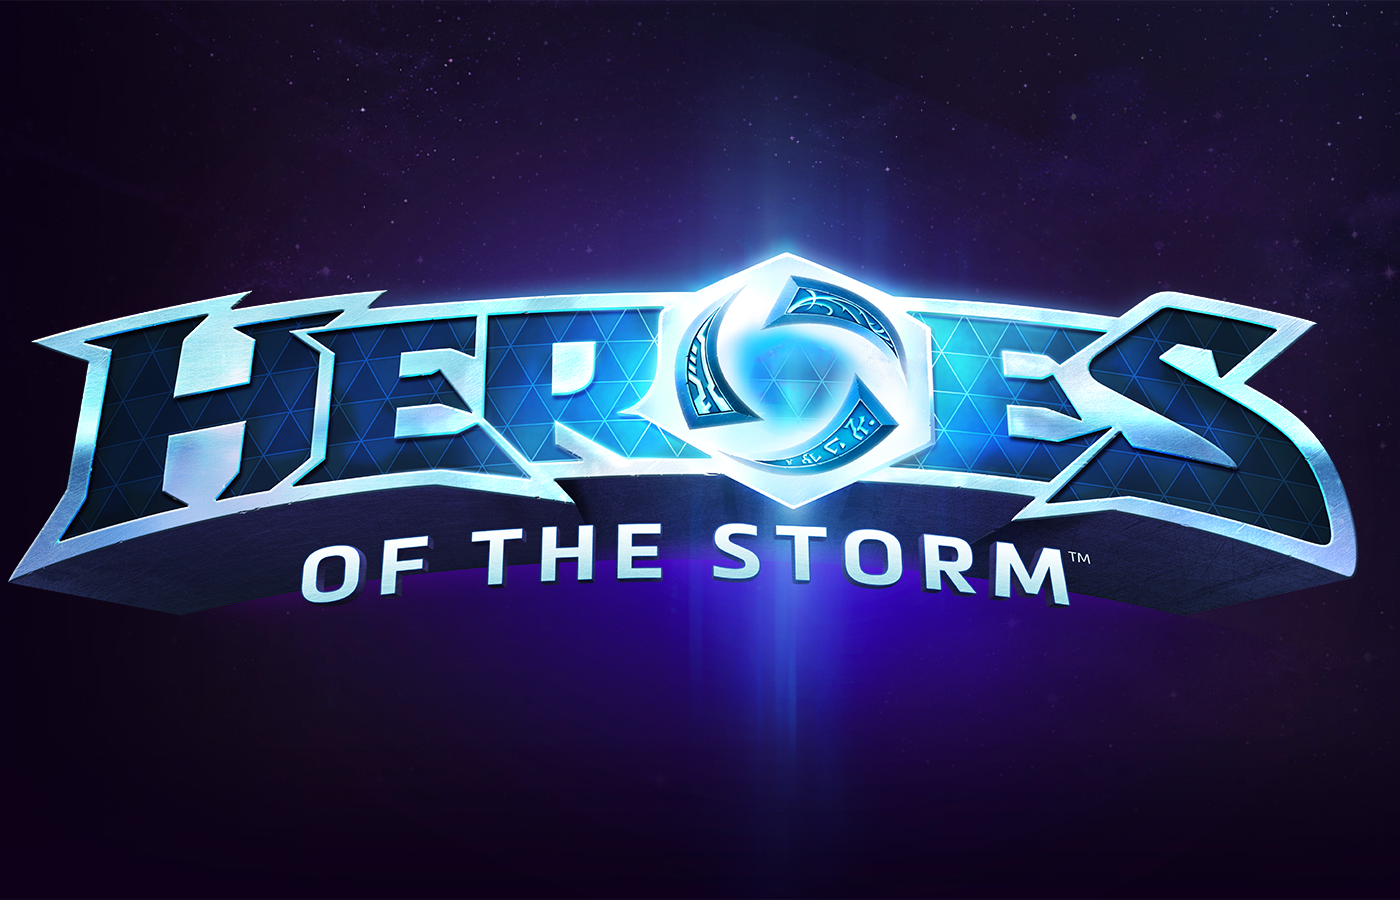 Upcoming Ranked Play Revamp In Heroes Of The Storm Gameranx Our site contains tons of hero builds, a talent calculator, charts, statistics, and much more! upcoming ranked play revamp in heroes